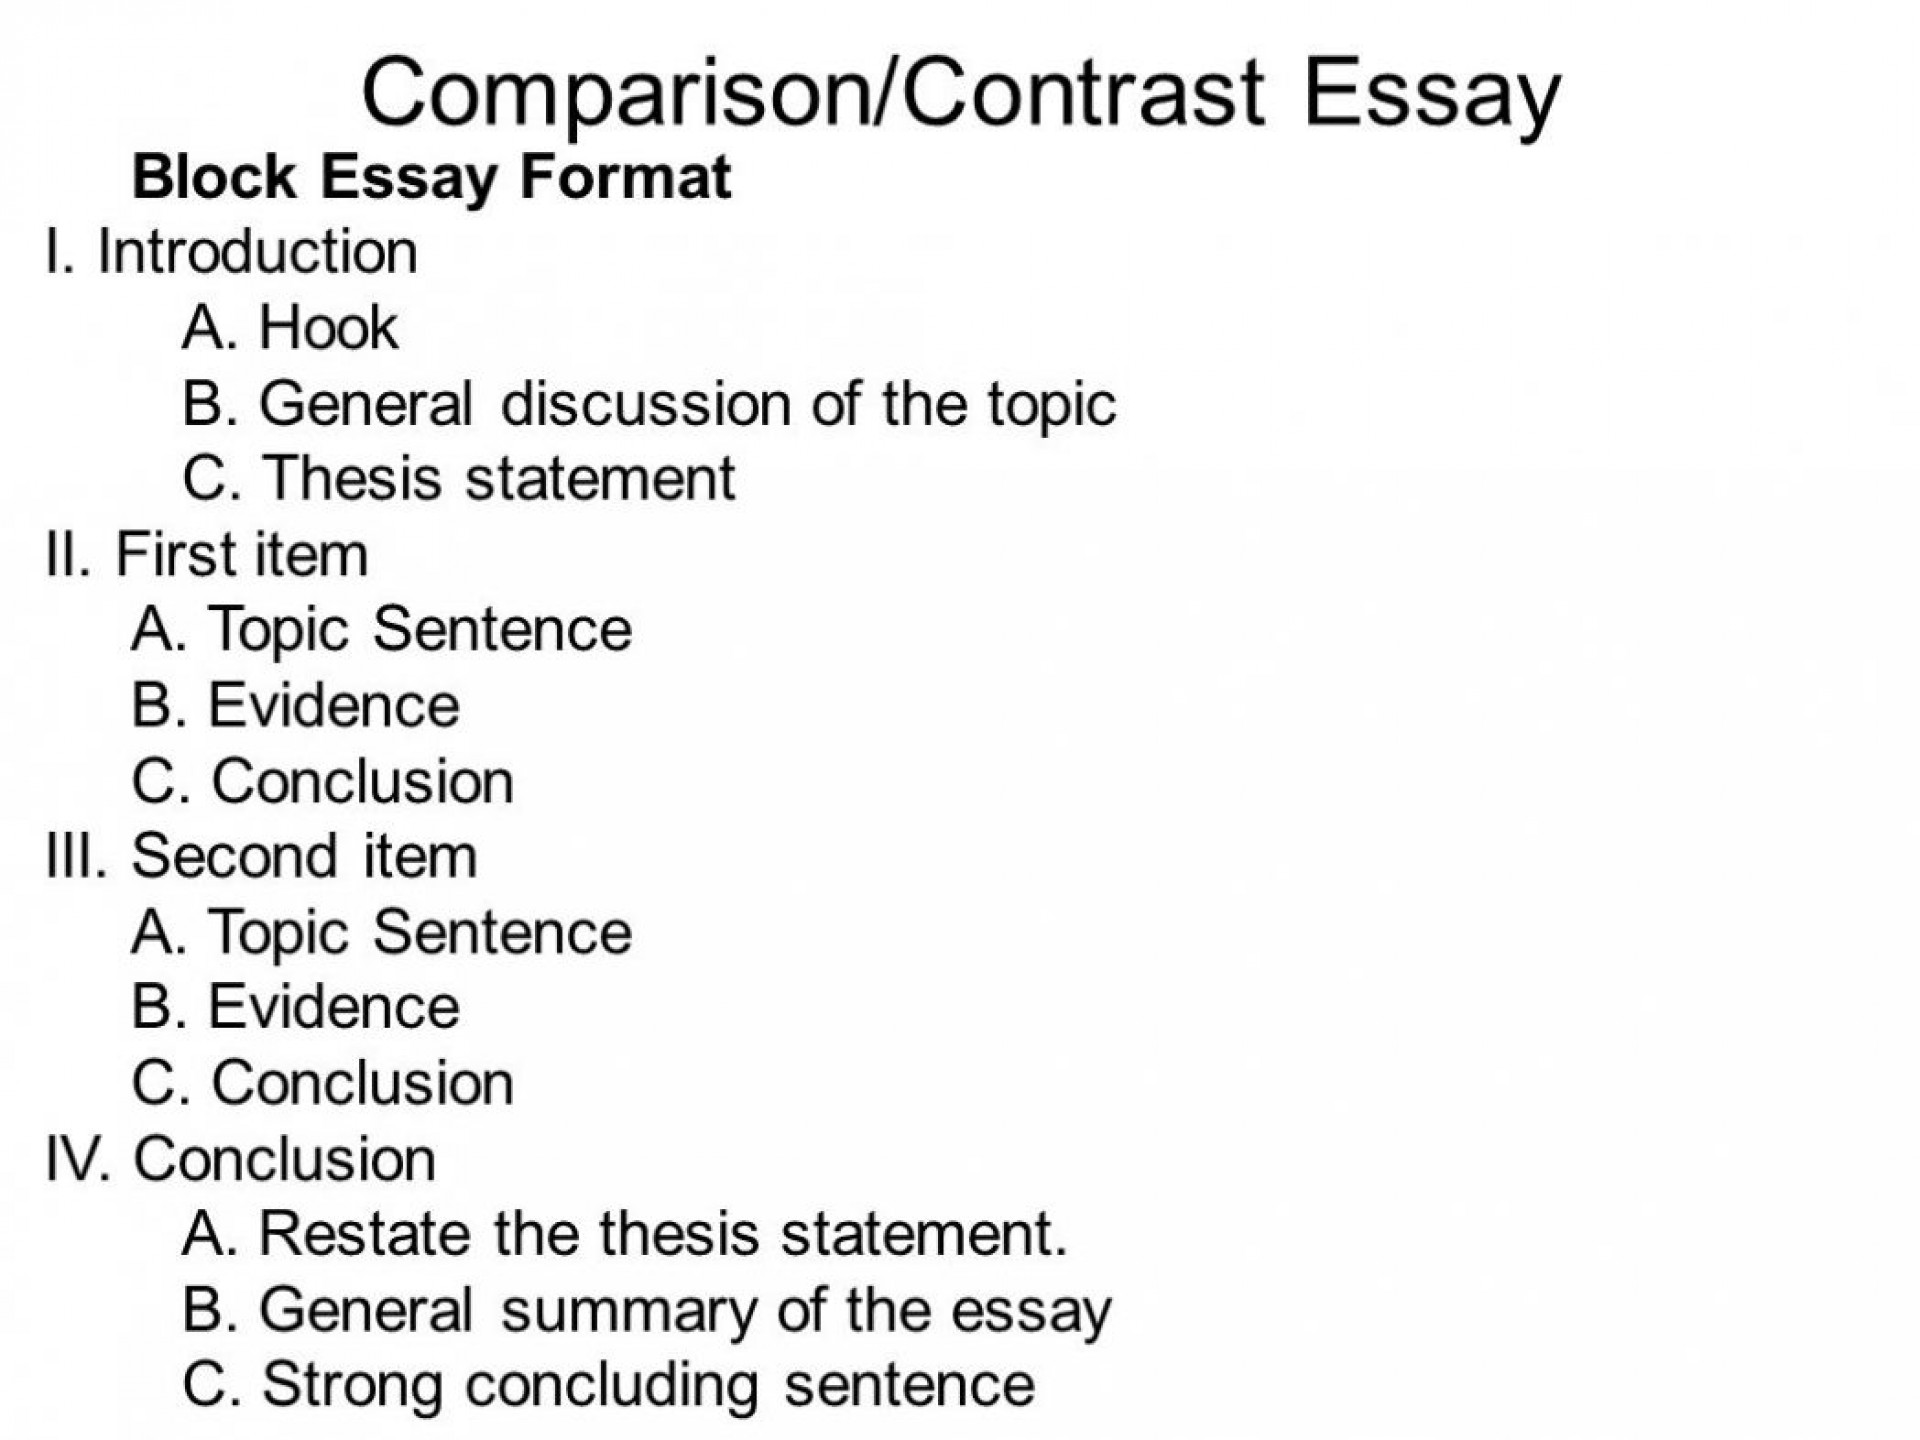 005 Essay Example Good Compare And Contrast What Are Topics Argumentative About Youth Sports Sli Dealing With Medicine Unbelievable Title Generator Examples High School Titles 1920